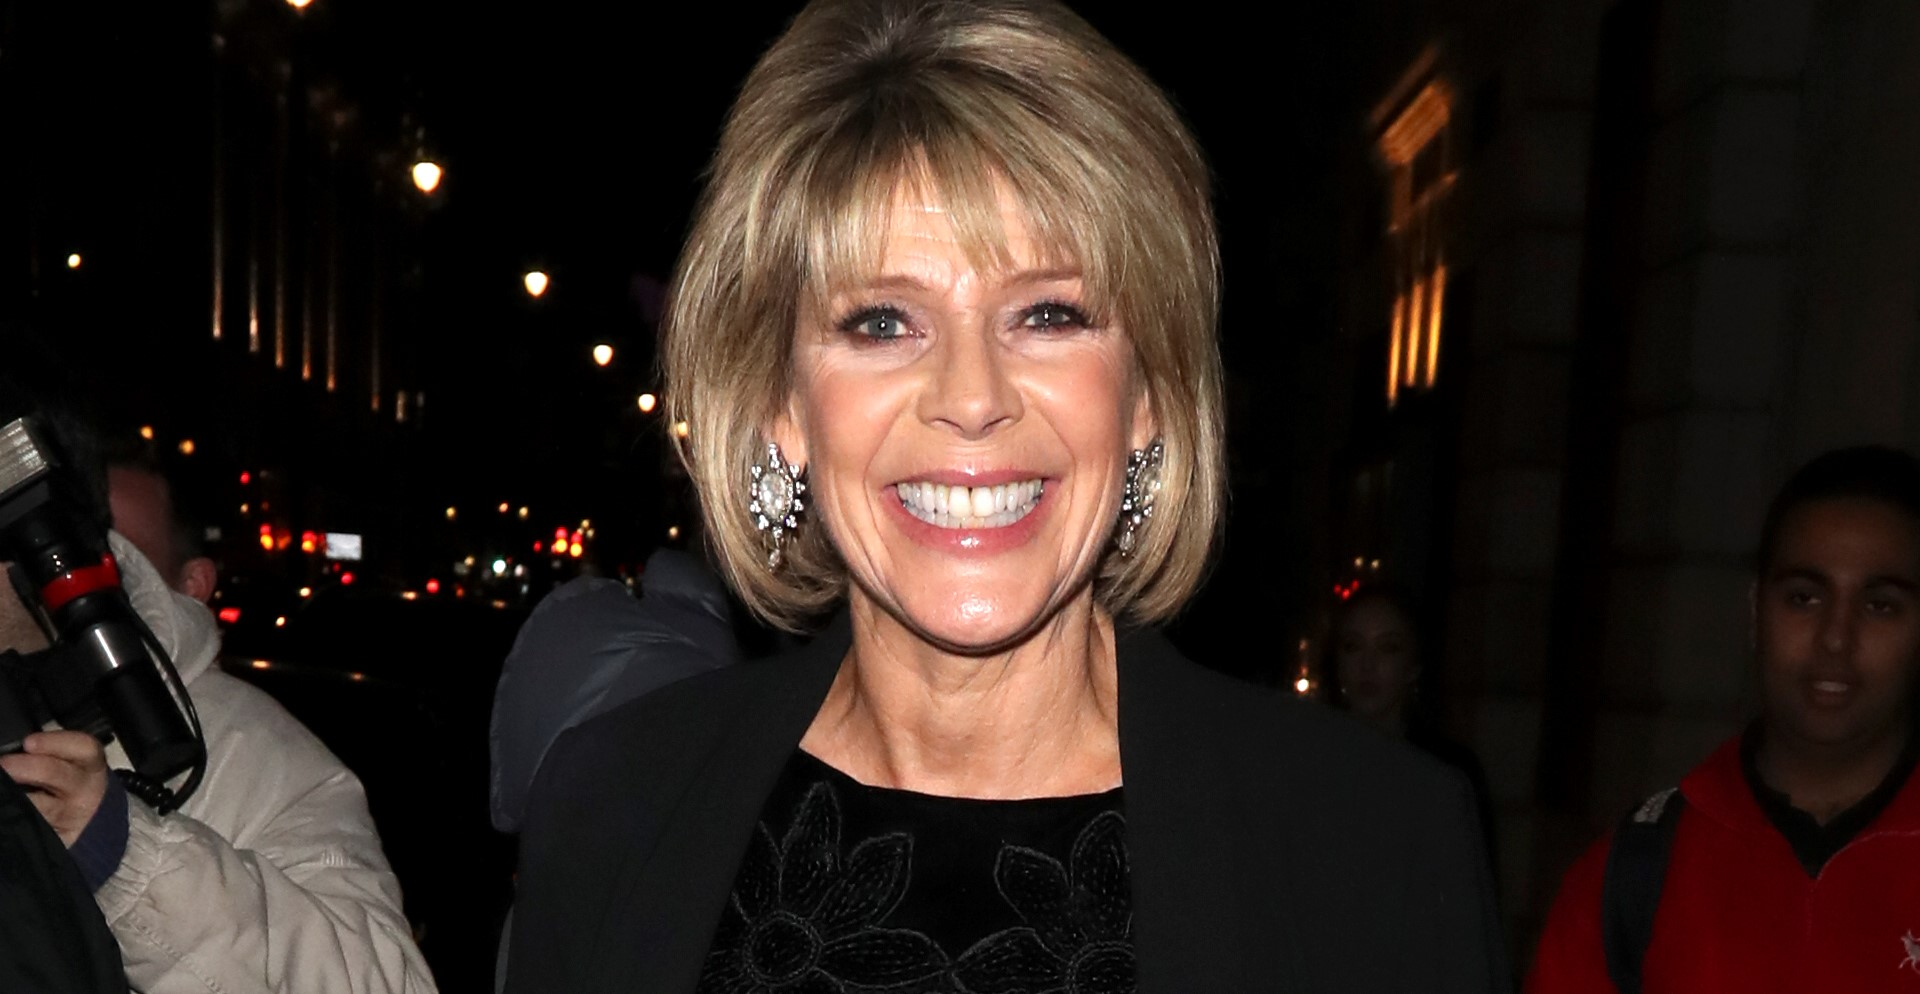 Ruth Langsford thrills fans with video of her beloved mum